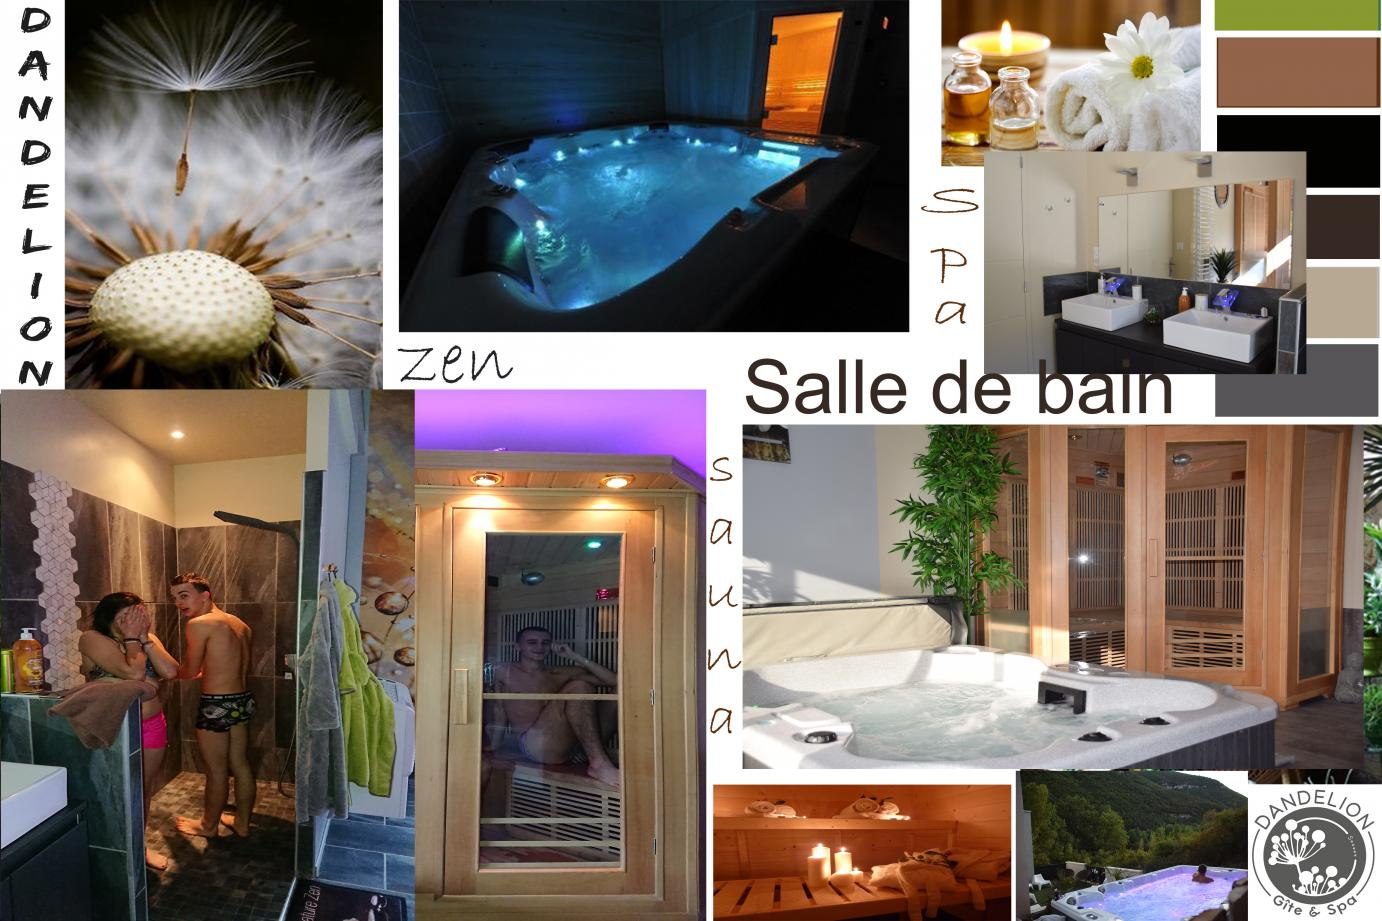 salle de bain spa design avec jacuzzi sauna ecolodge. Black Bedroom Furniture Sets. Home Design Ideas